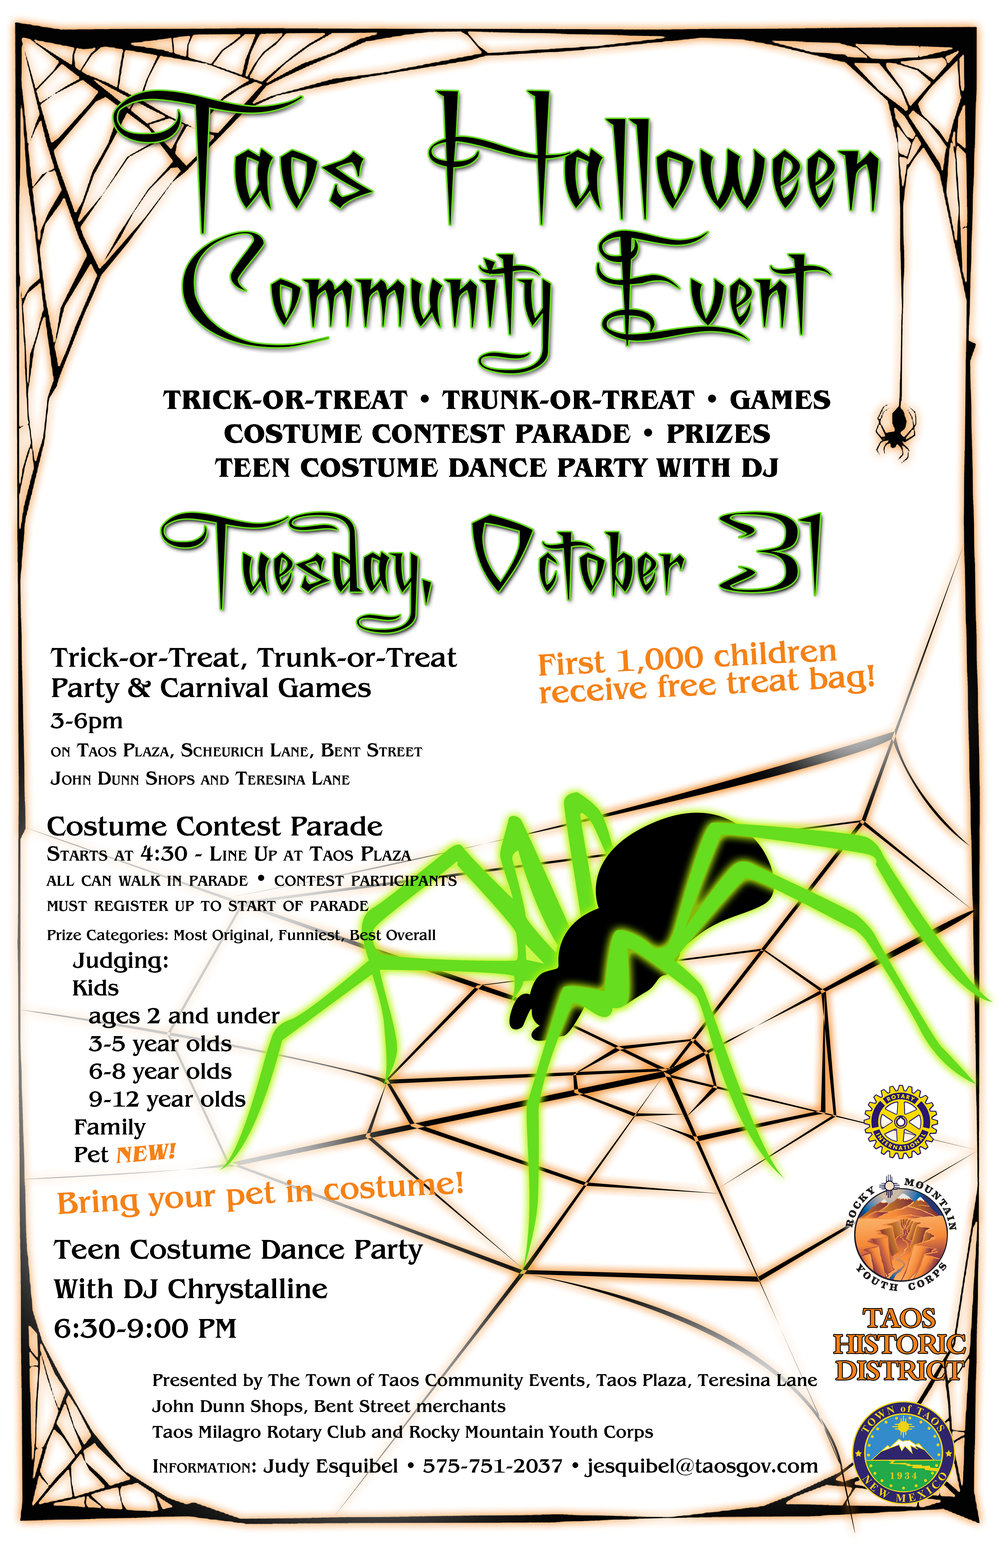 Taos Halloween Community Event Flyer in white 2017.jpg